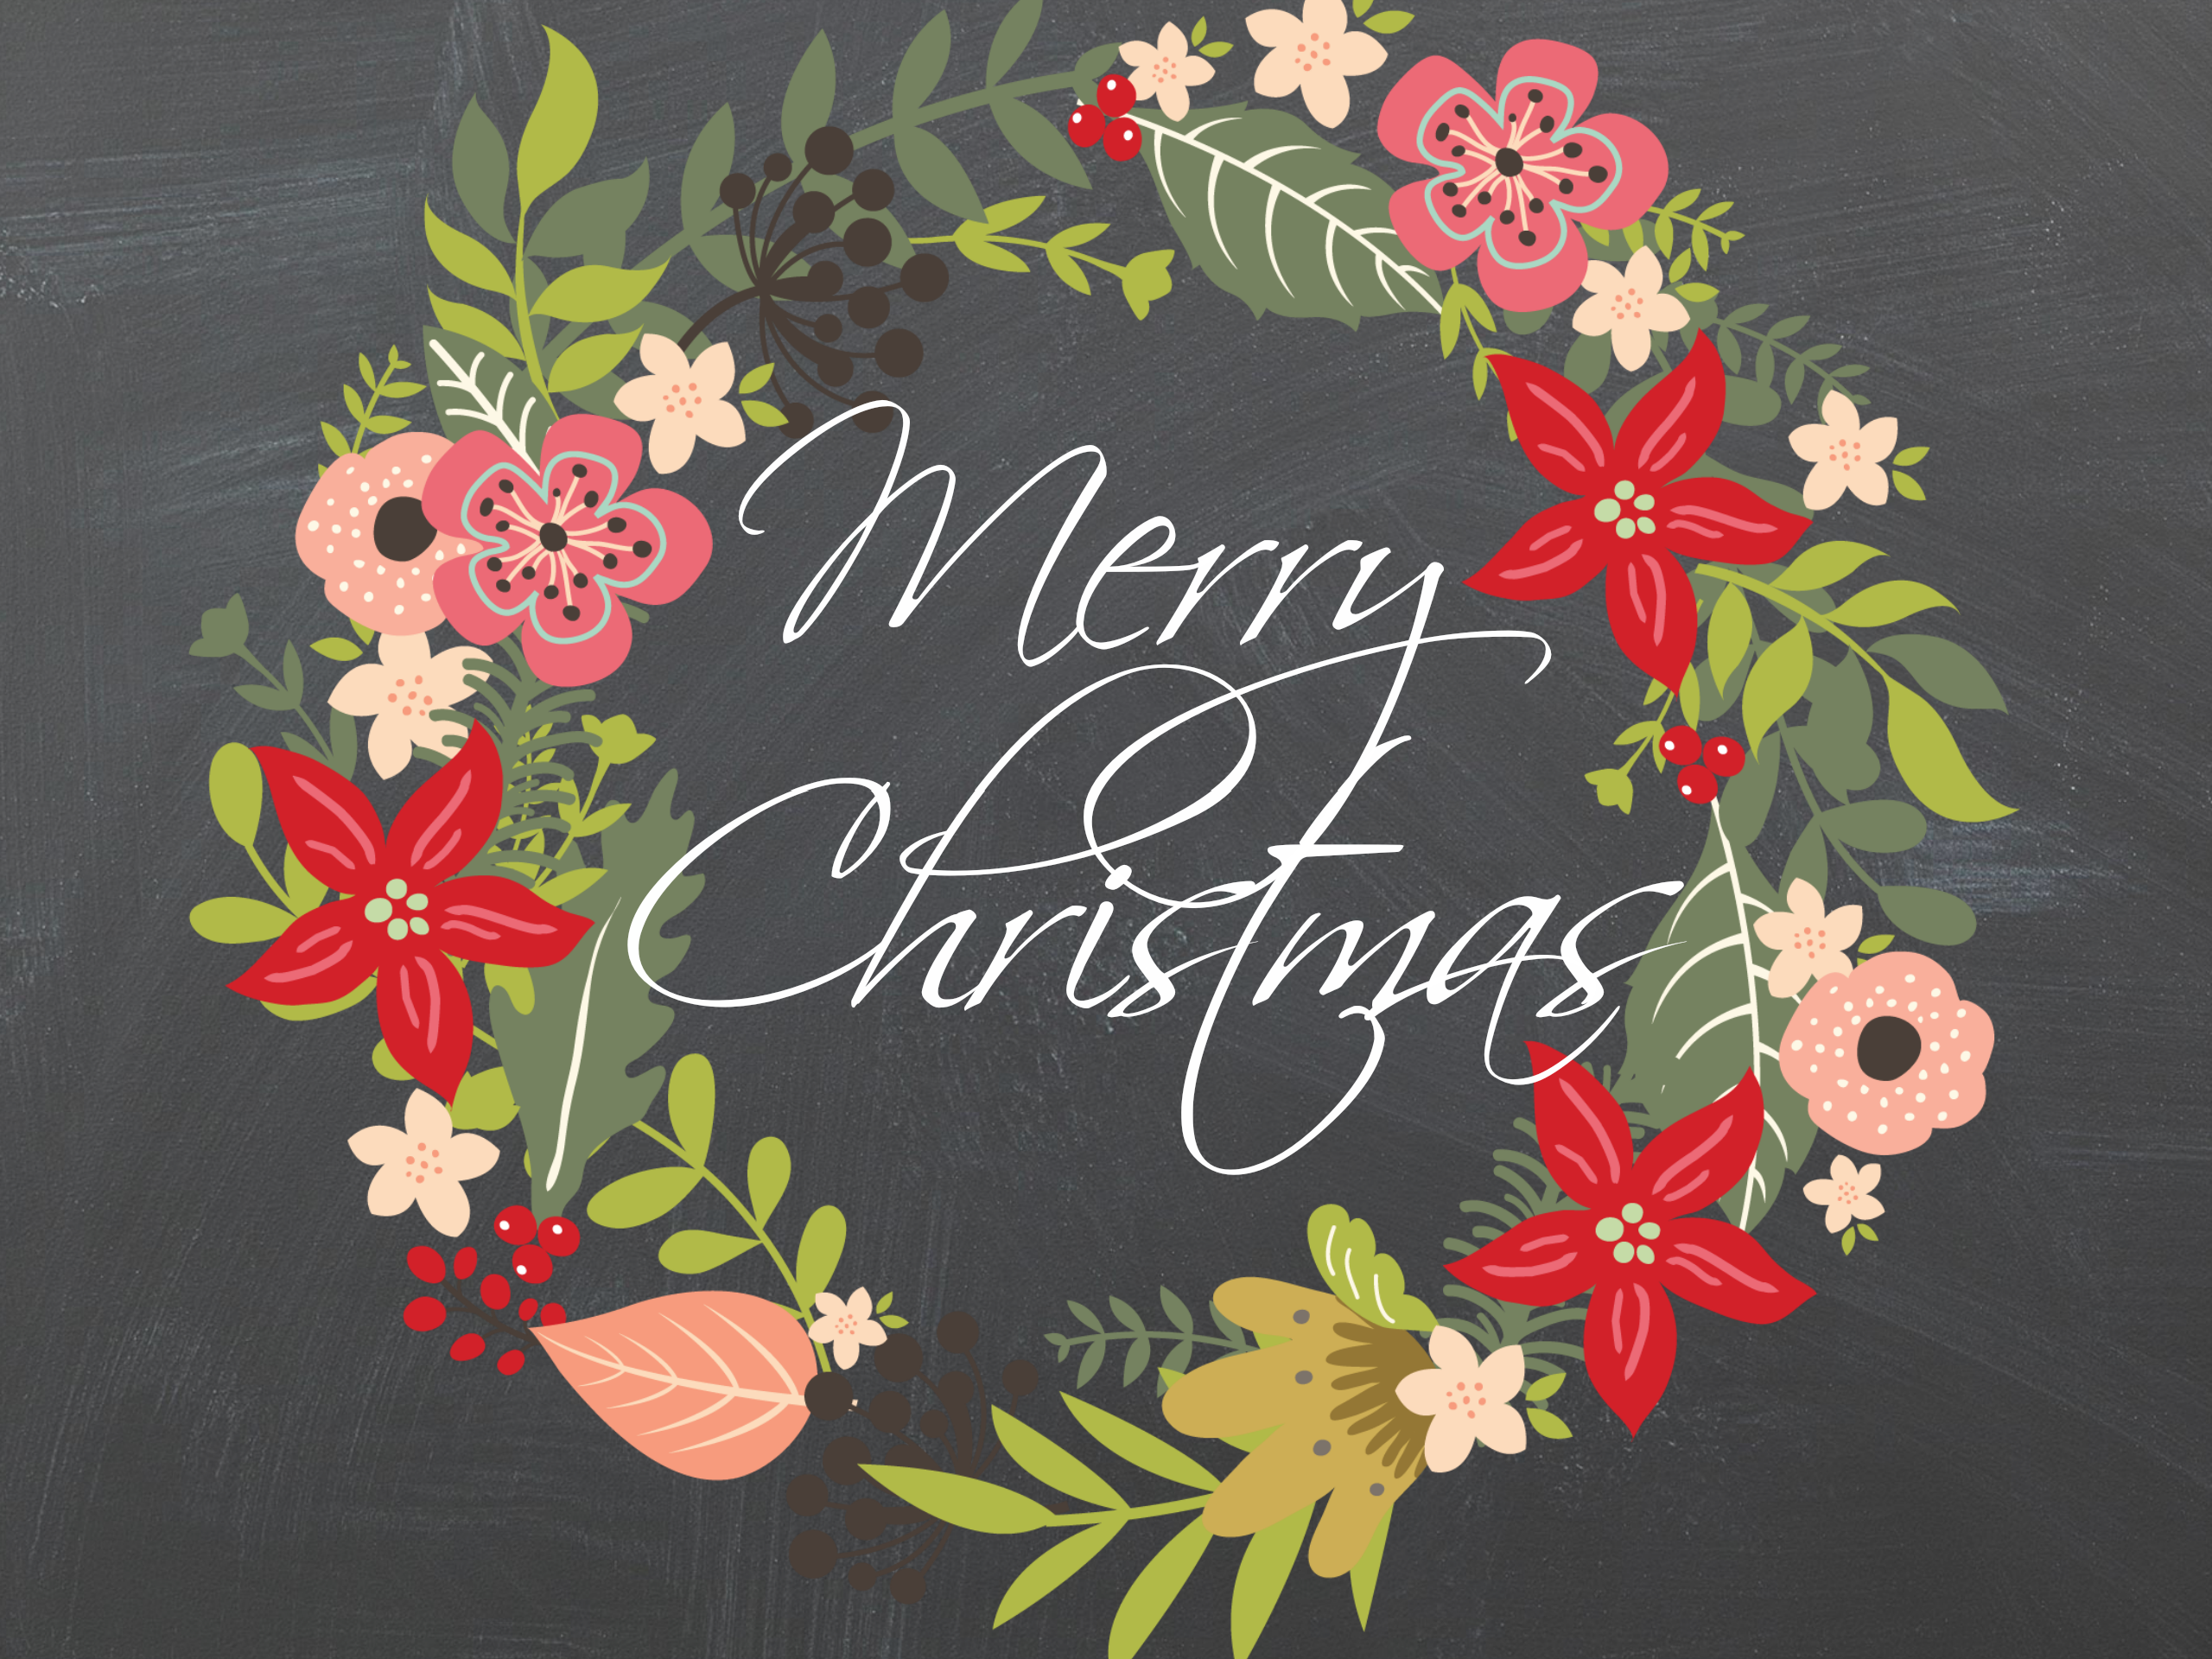 Printable paper backgrounds christmas - These Free Christmas Printables Are Absolutely Stunning Get Them For Free At Designer